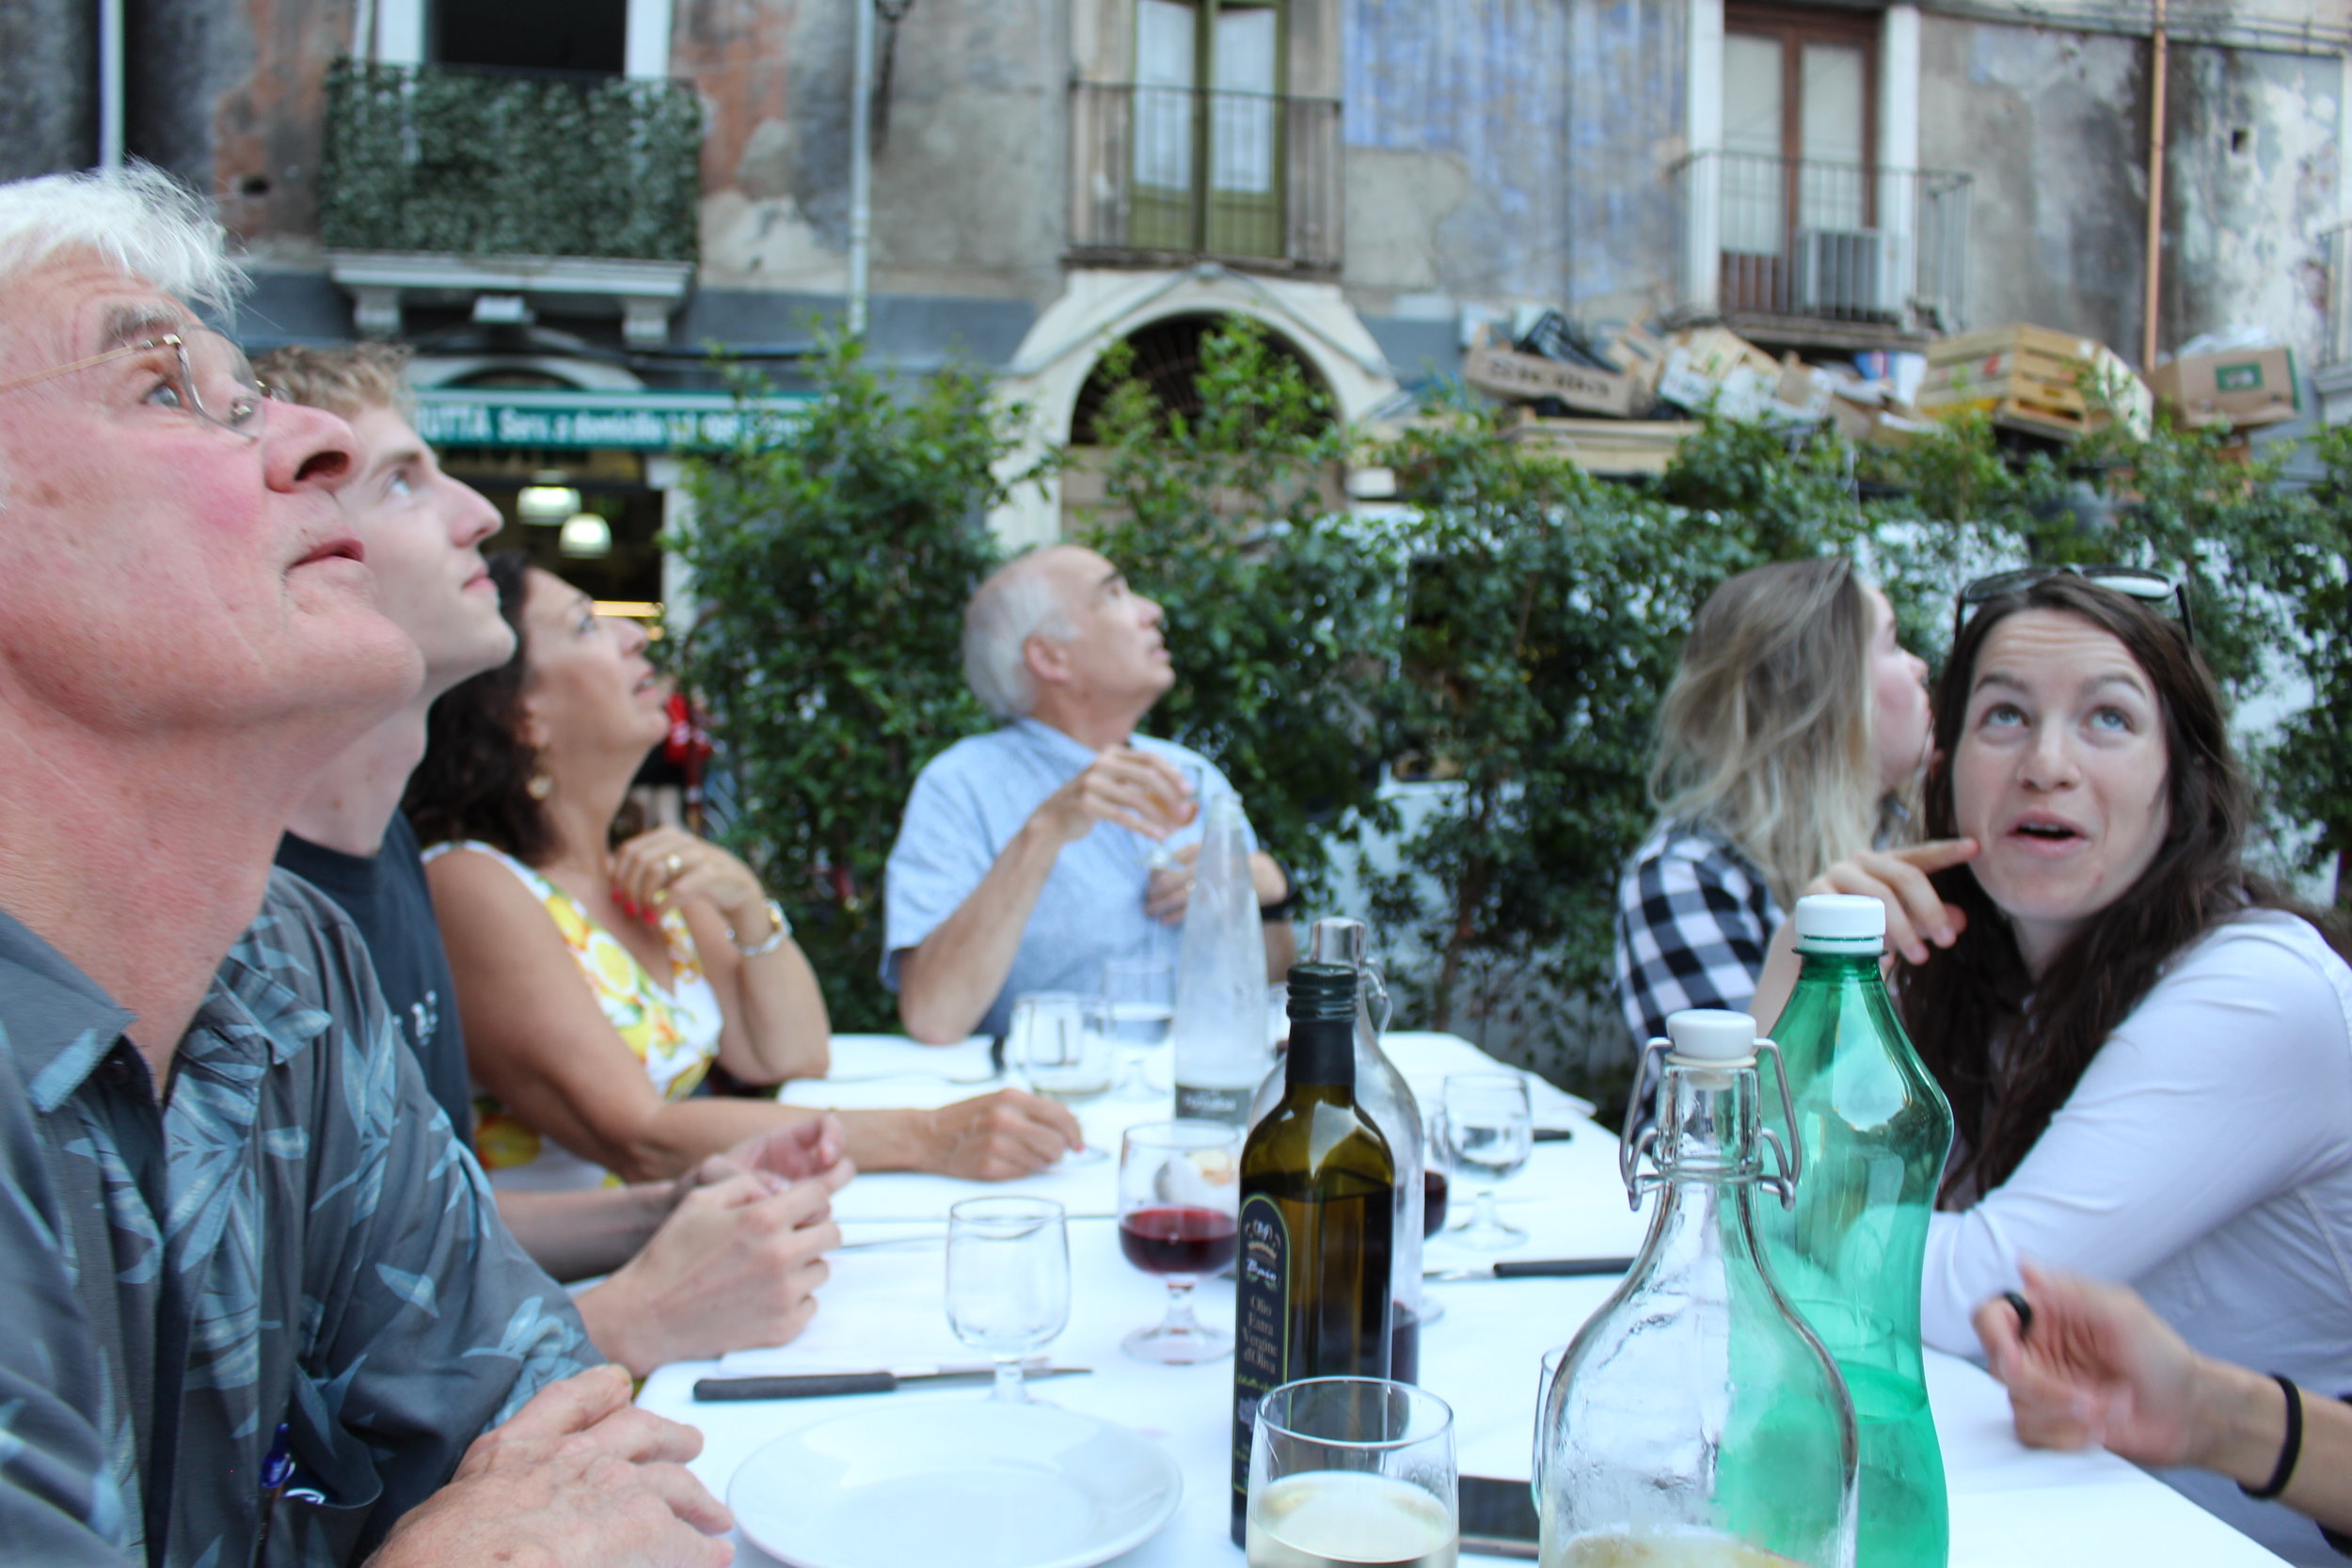 Our last dinner together, at the Trattoria del Cavaliere, we were craning our heads to figure out if we were looking at birds or bats swooping around. The food was exceptional.